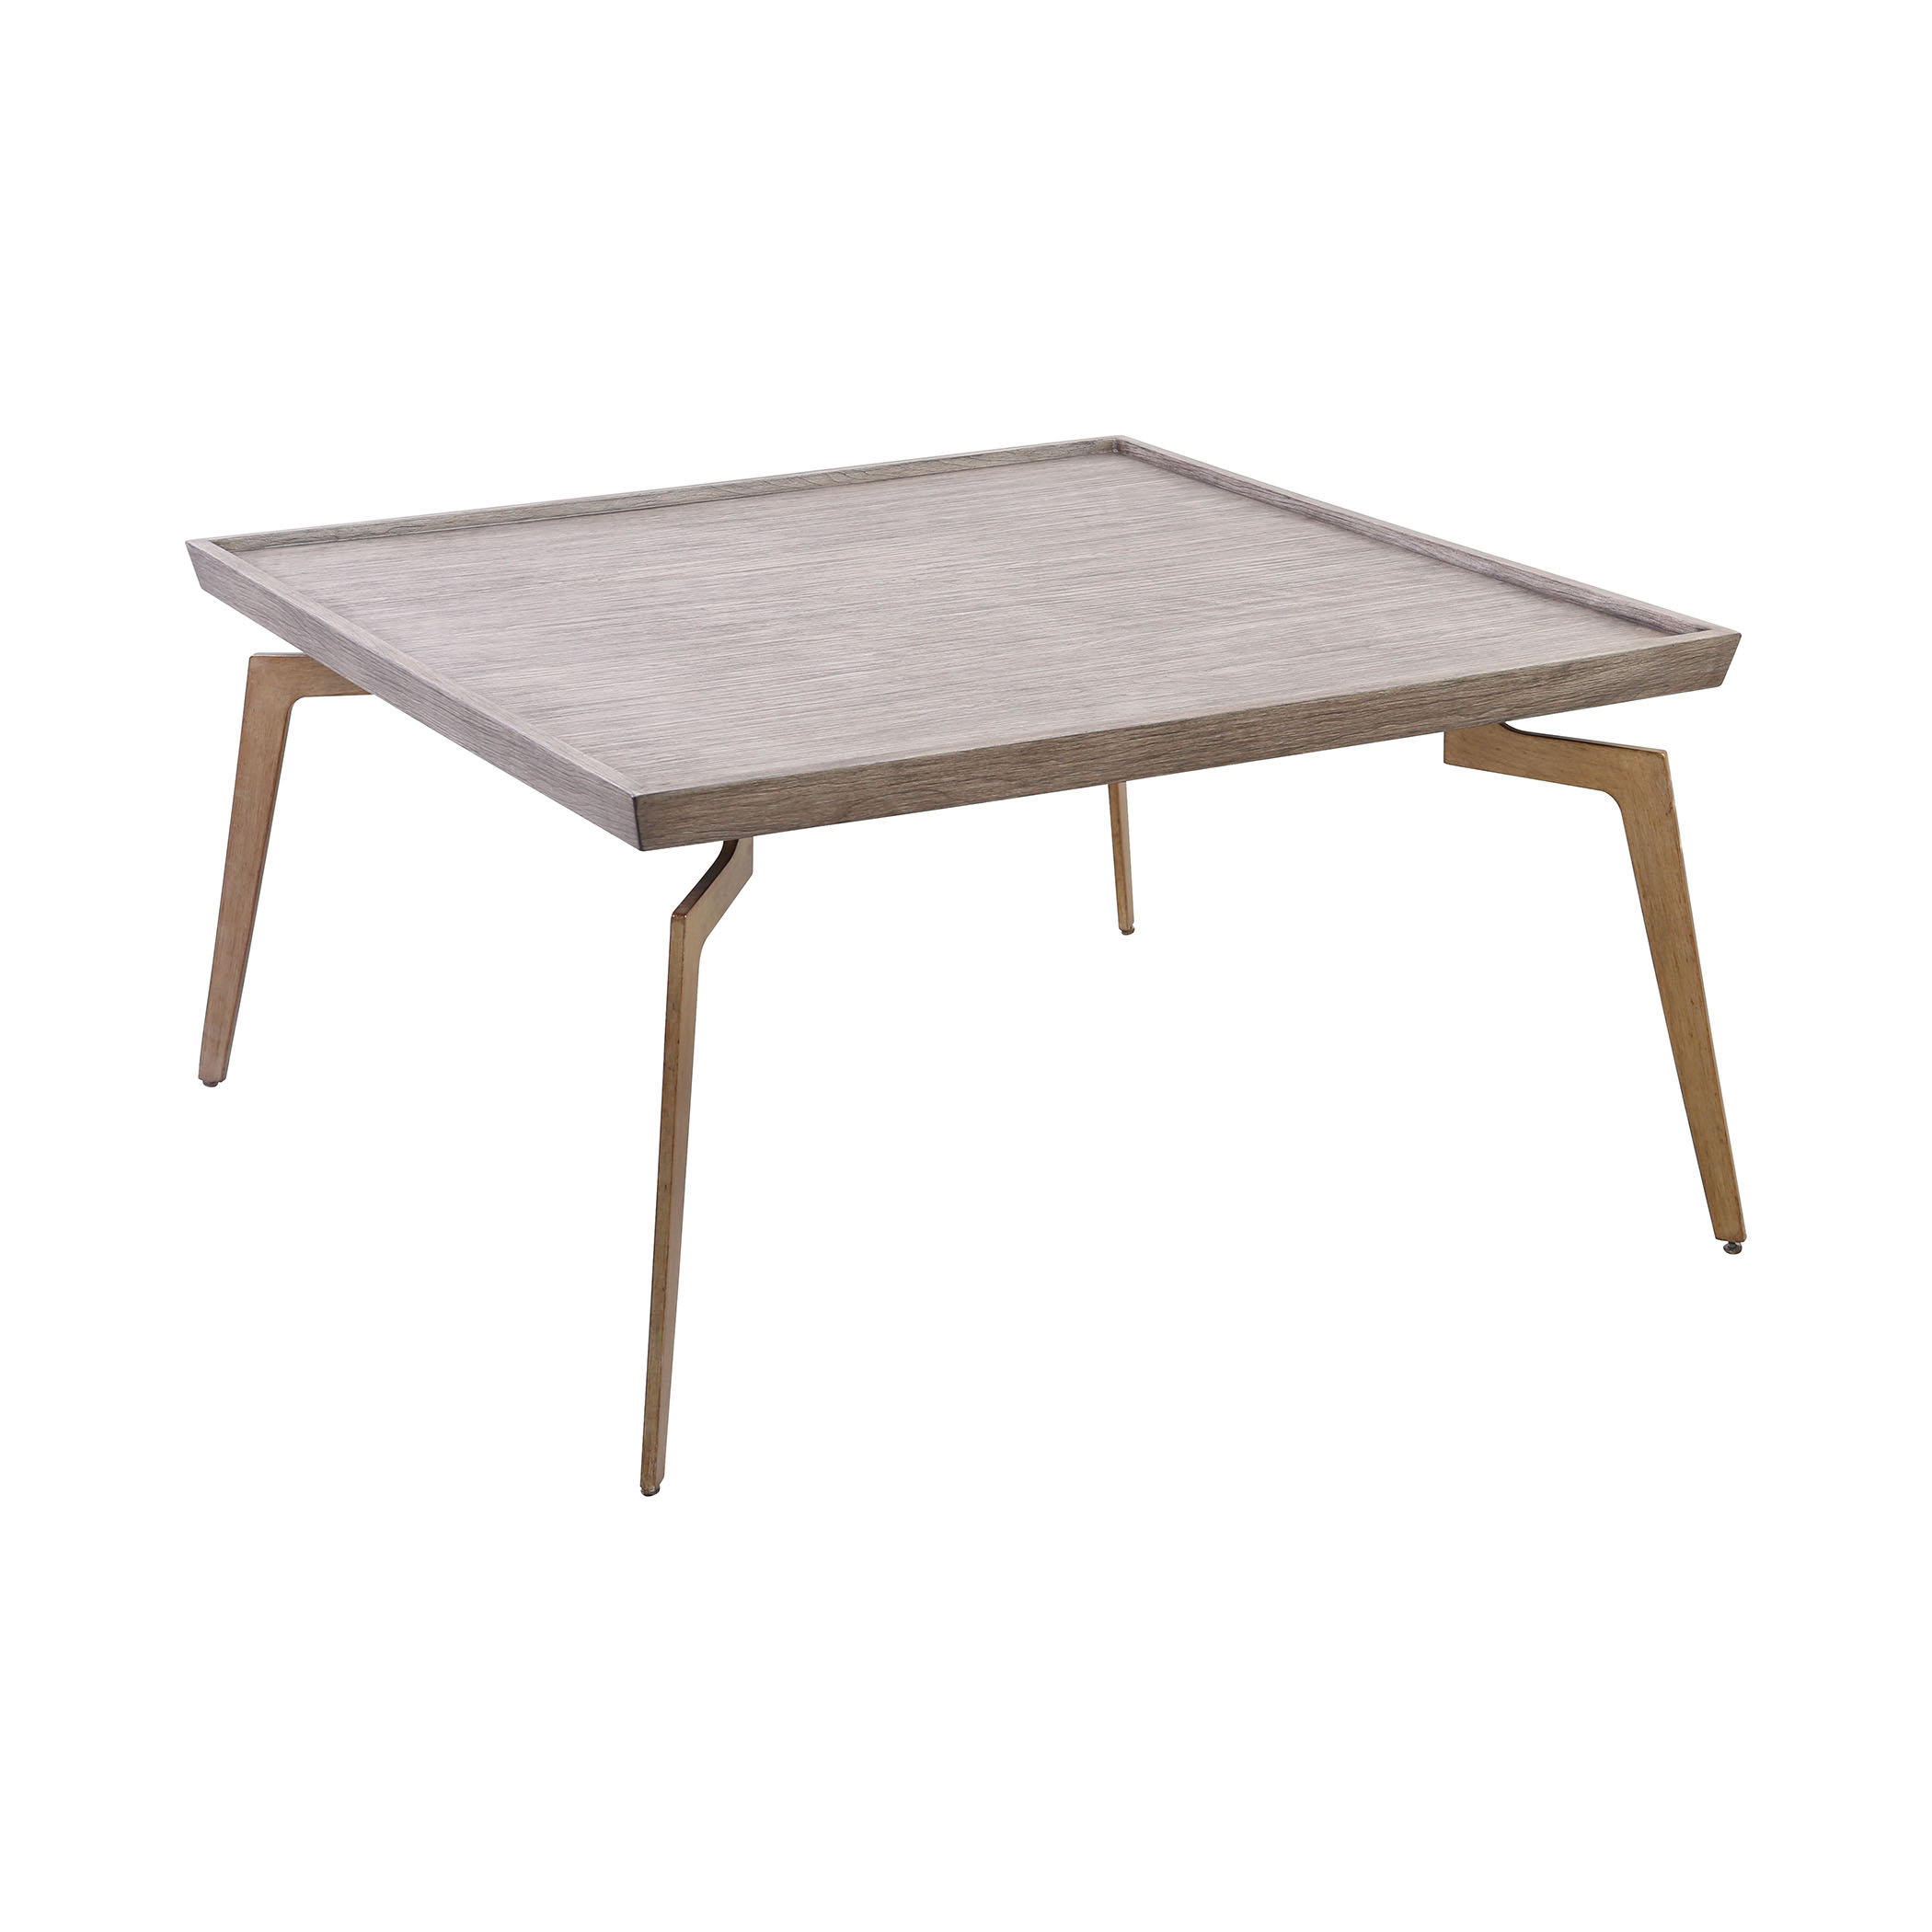 Larocca Coffee Table in Soft Gold and Grey Birch Veneer | Elk Home